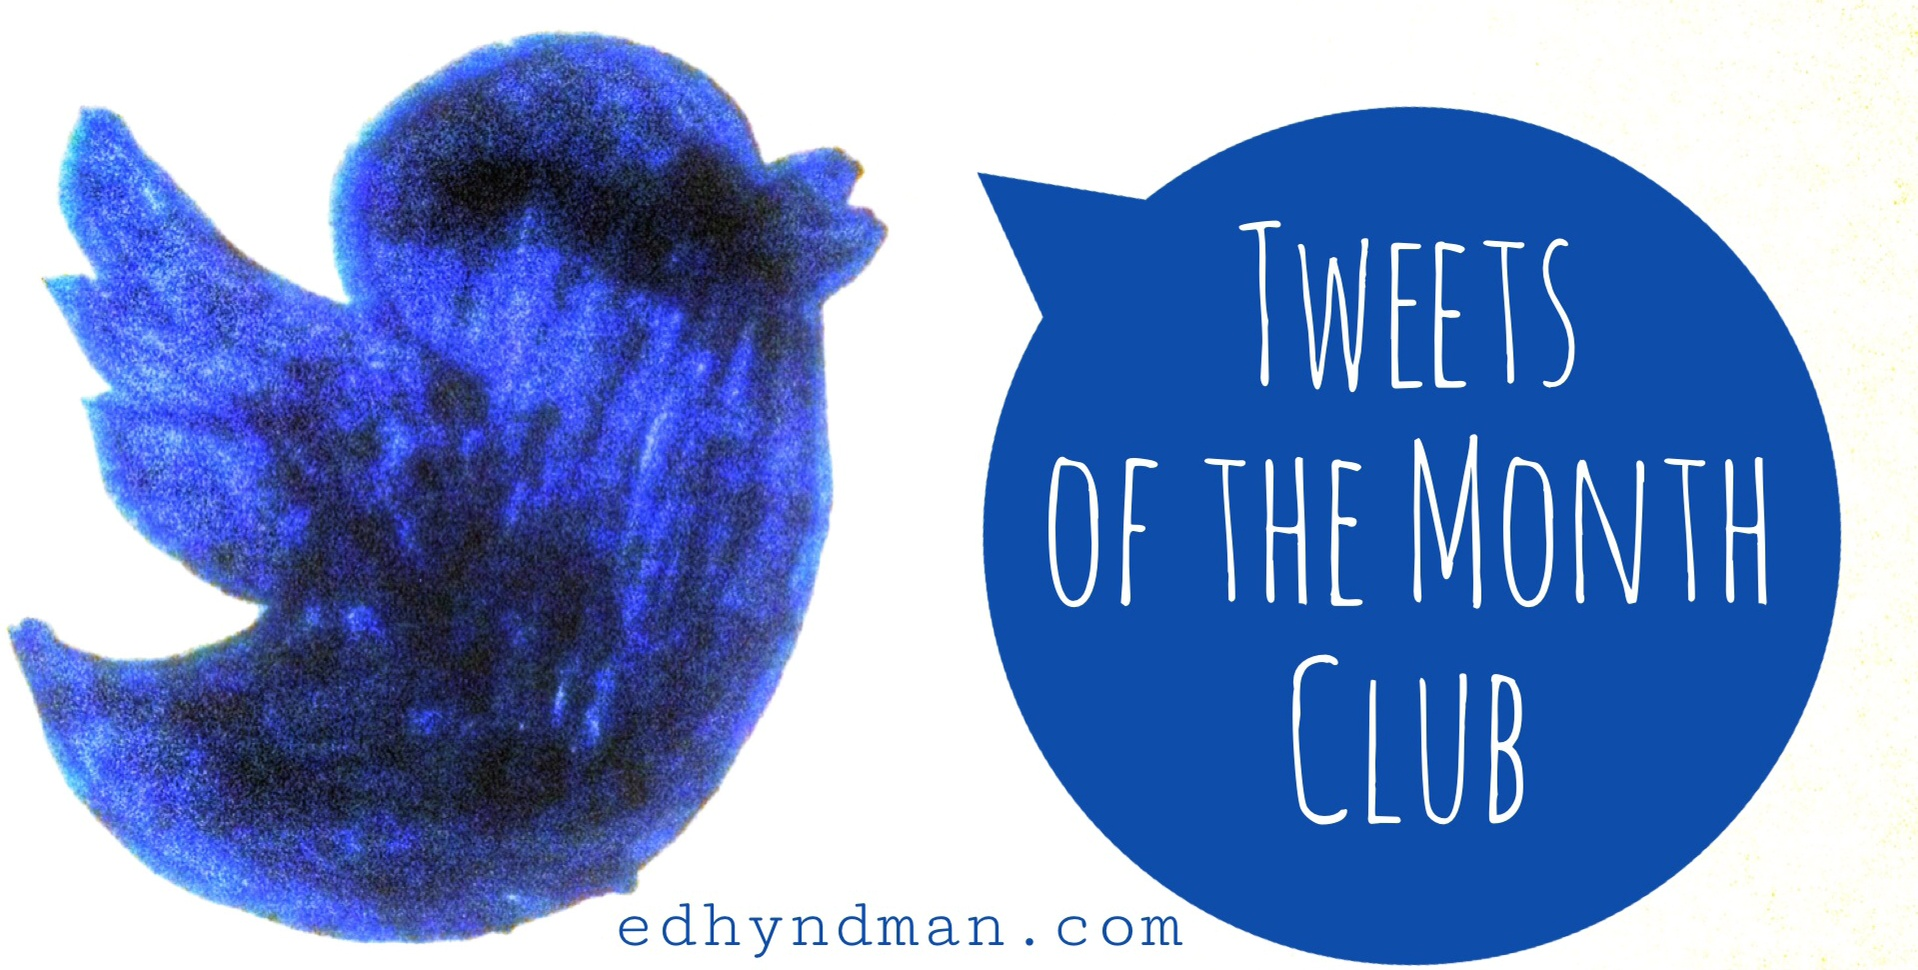 Tweets of the Month Club| January 2016